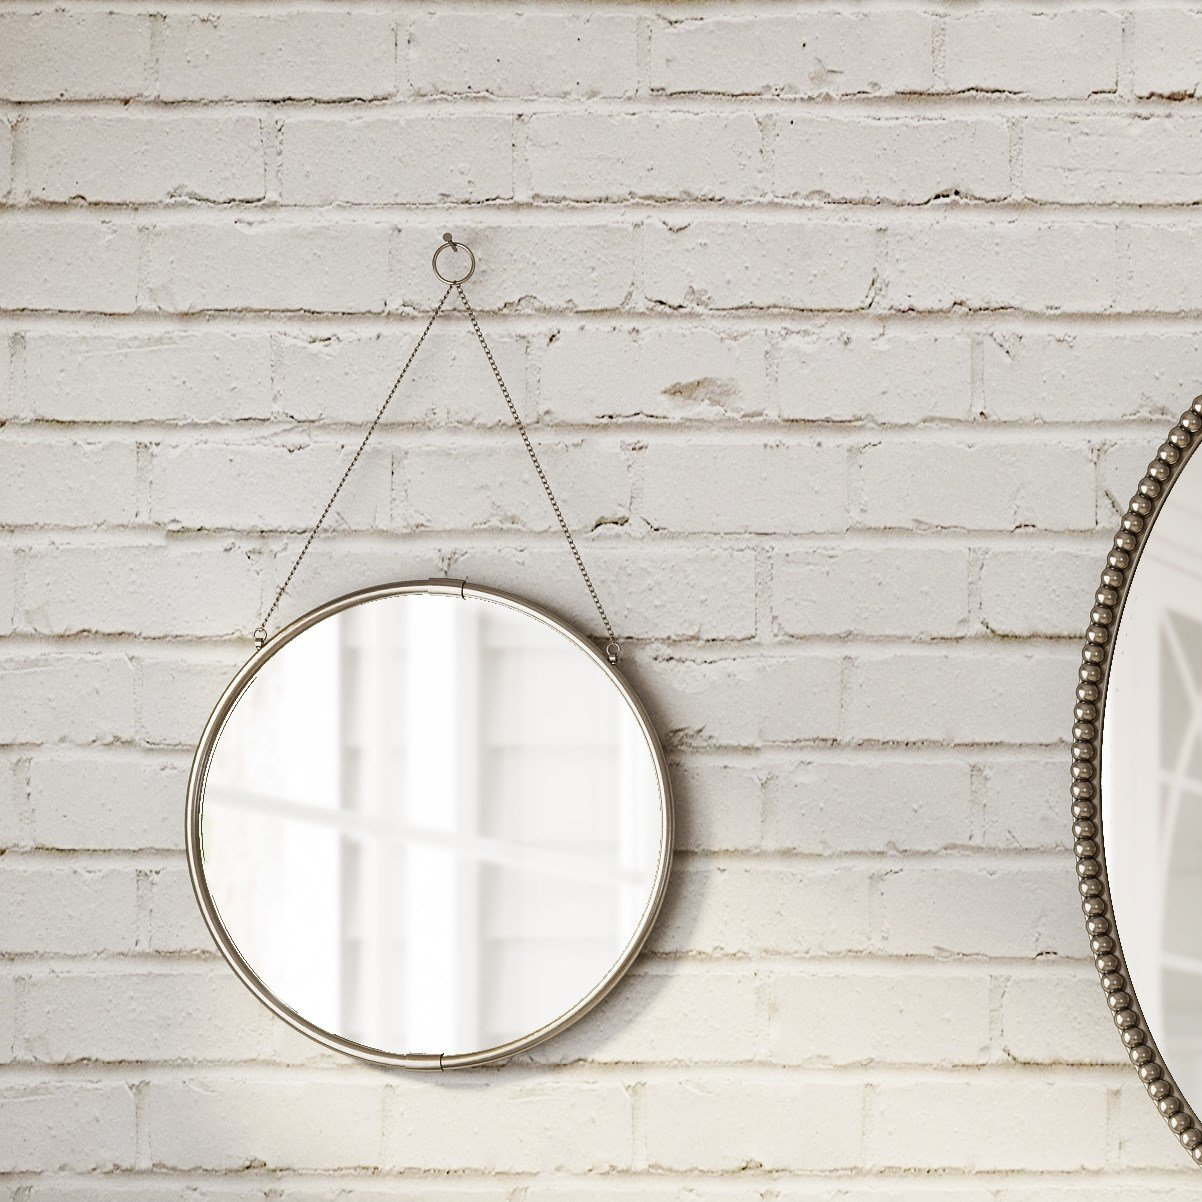 Brea Decorative Round Hanging Modern & Contemporary Wall Mirror With Regard To Decorative Round Wall Mirrors (Image 4 of 20)